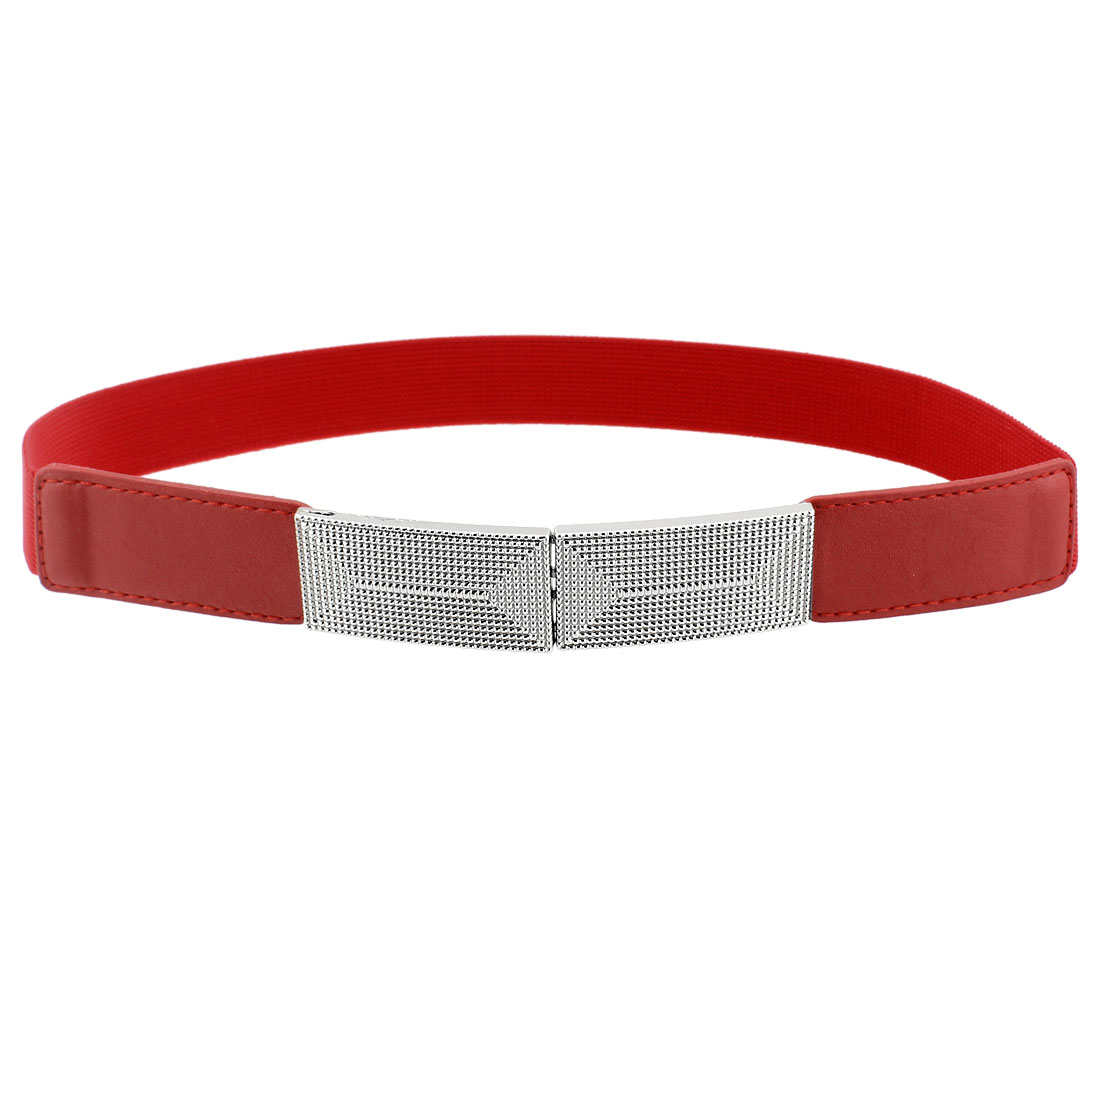 Ladies Girl Dual Interlocking Buckle Stretchy Band Slim Waist Belt Red